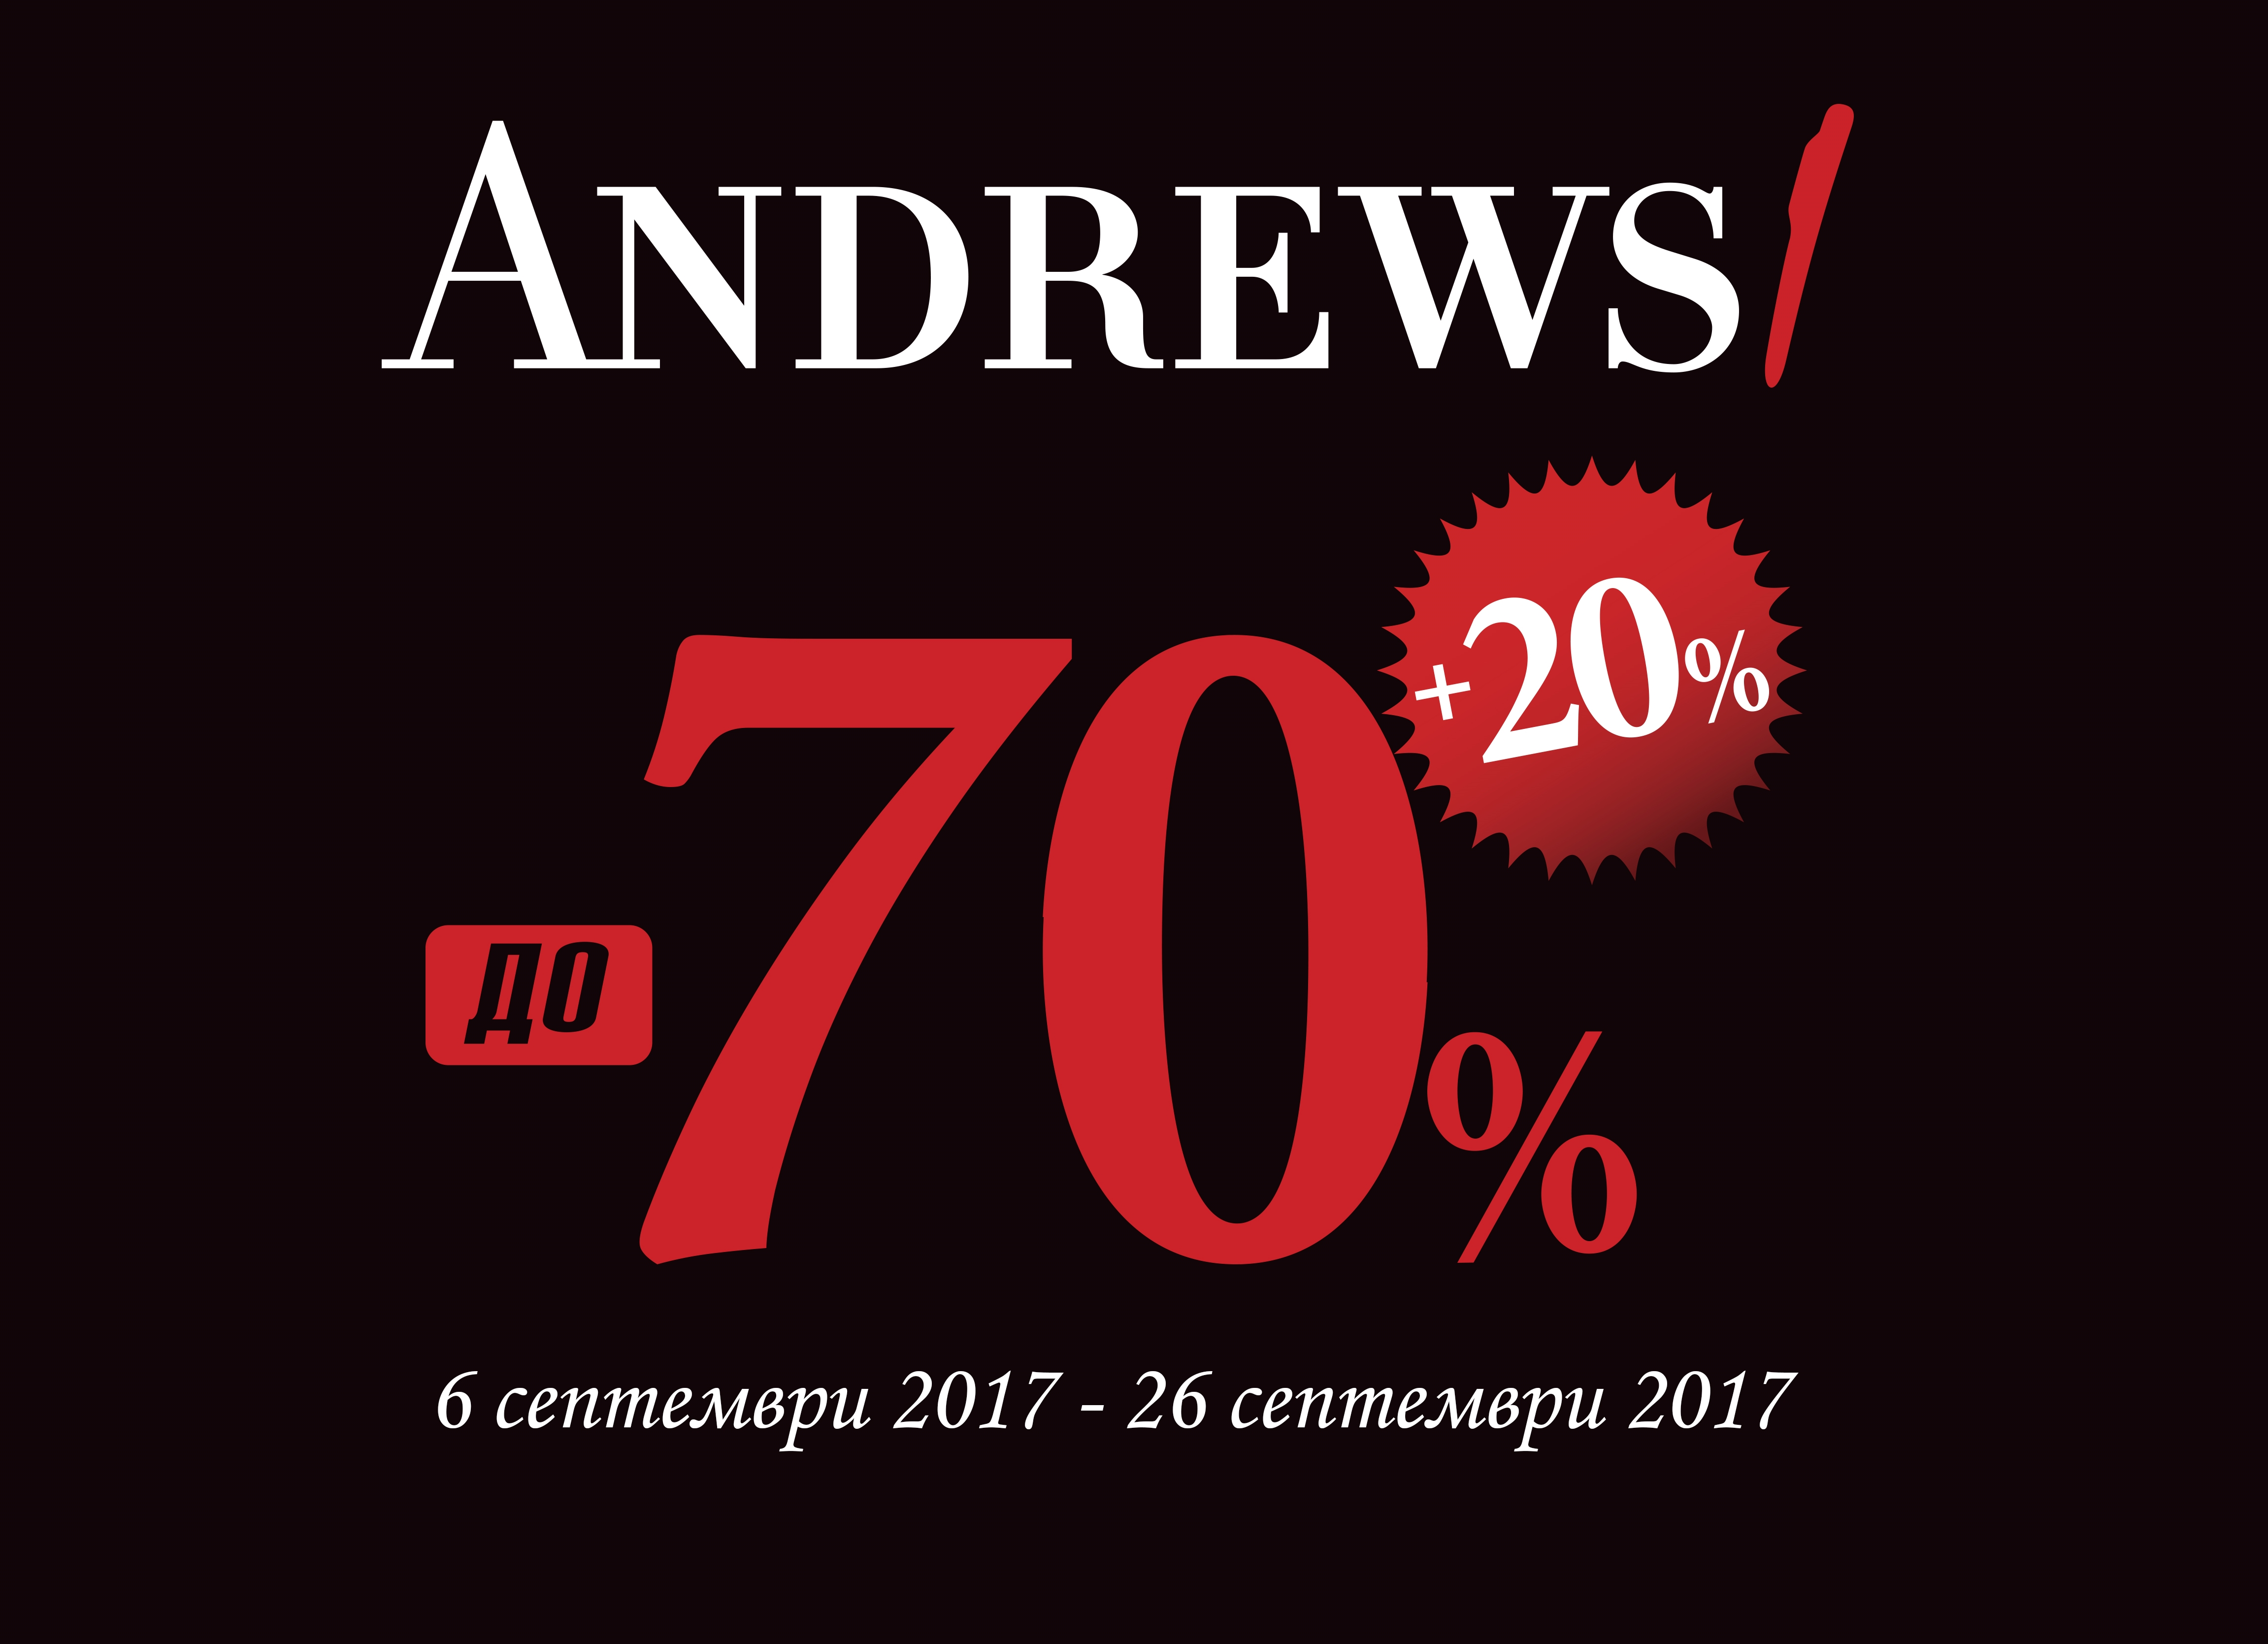 70% + 20% discount at Andrews stores in September